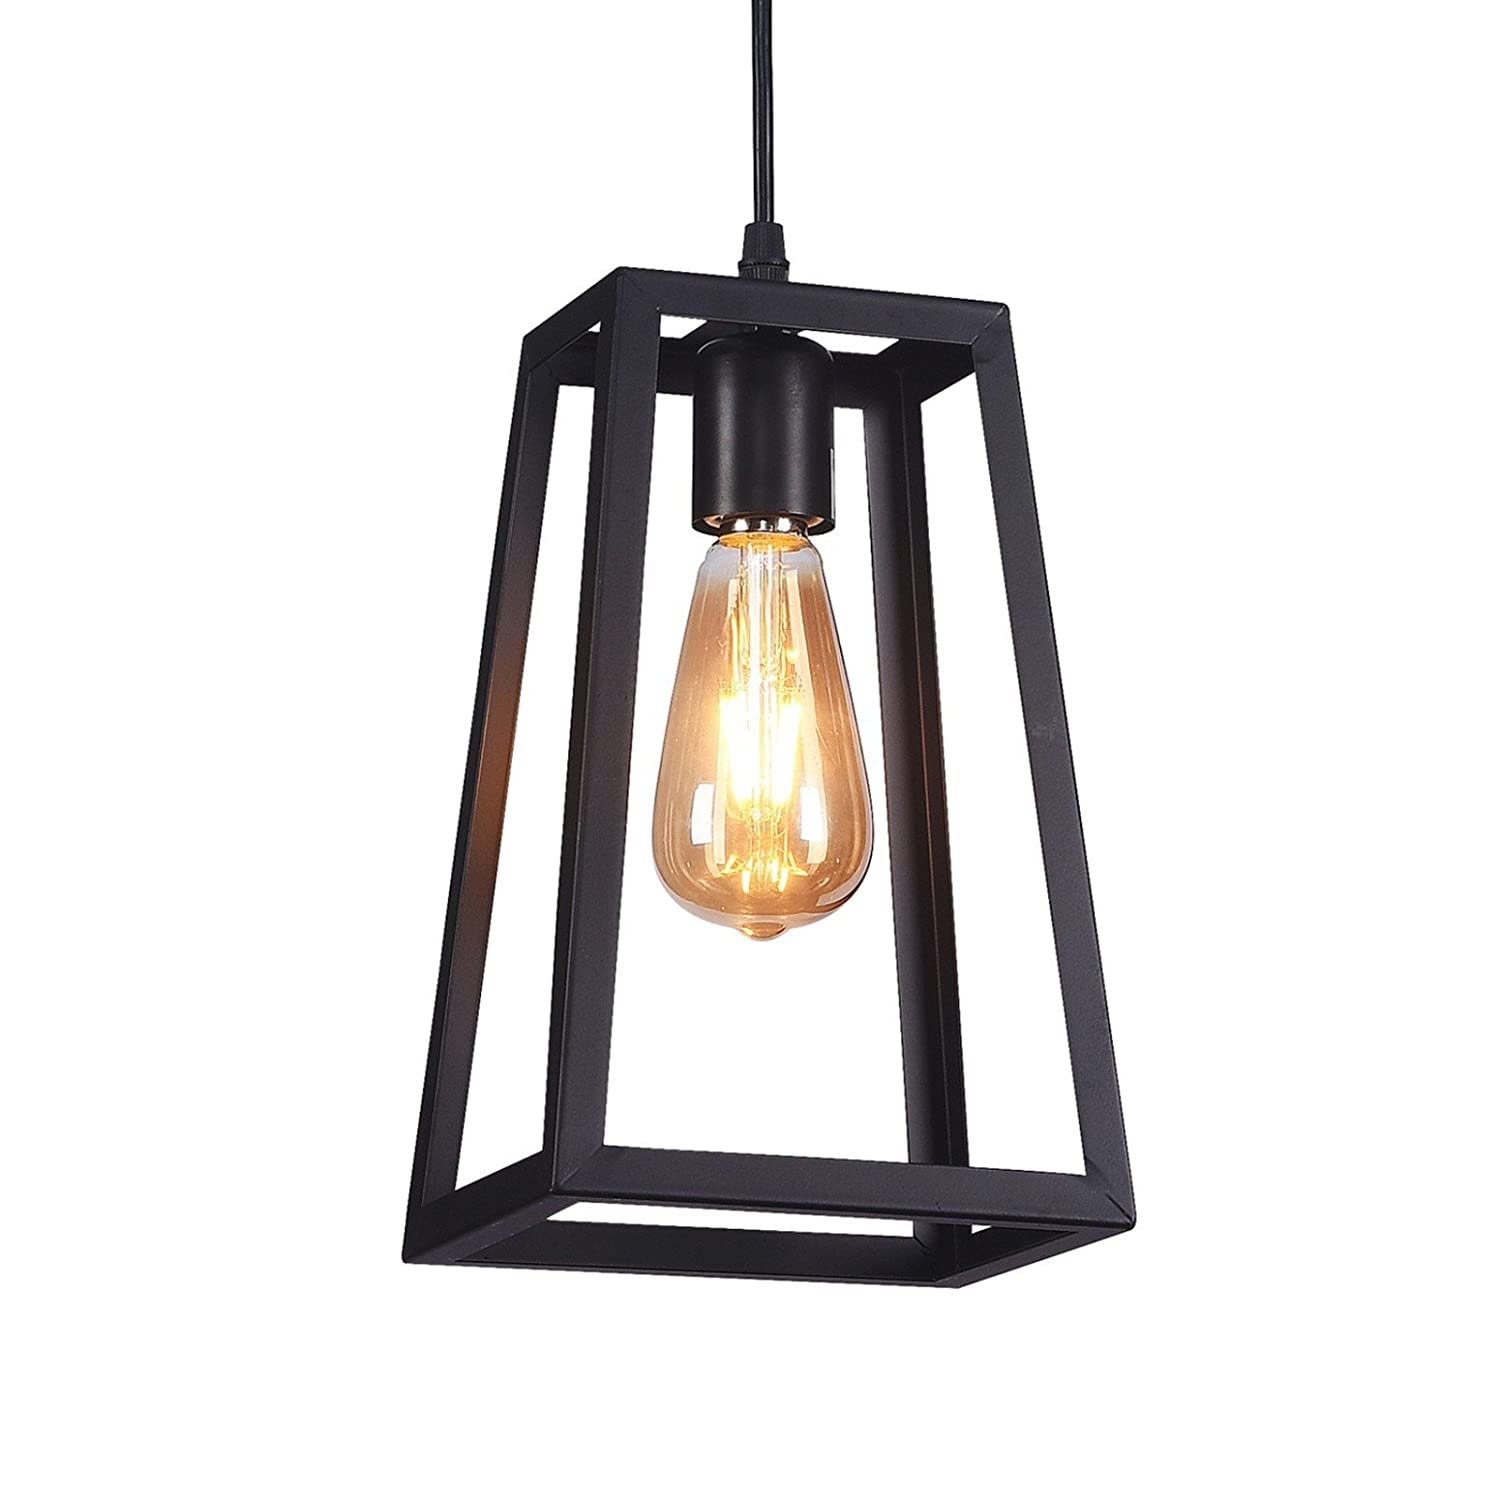 Wideskall 6 industrial metal iron frame square lantern mini hanging pendant light 1 bulb lighting fixture matte black finish ul certificated amazon